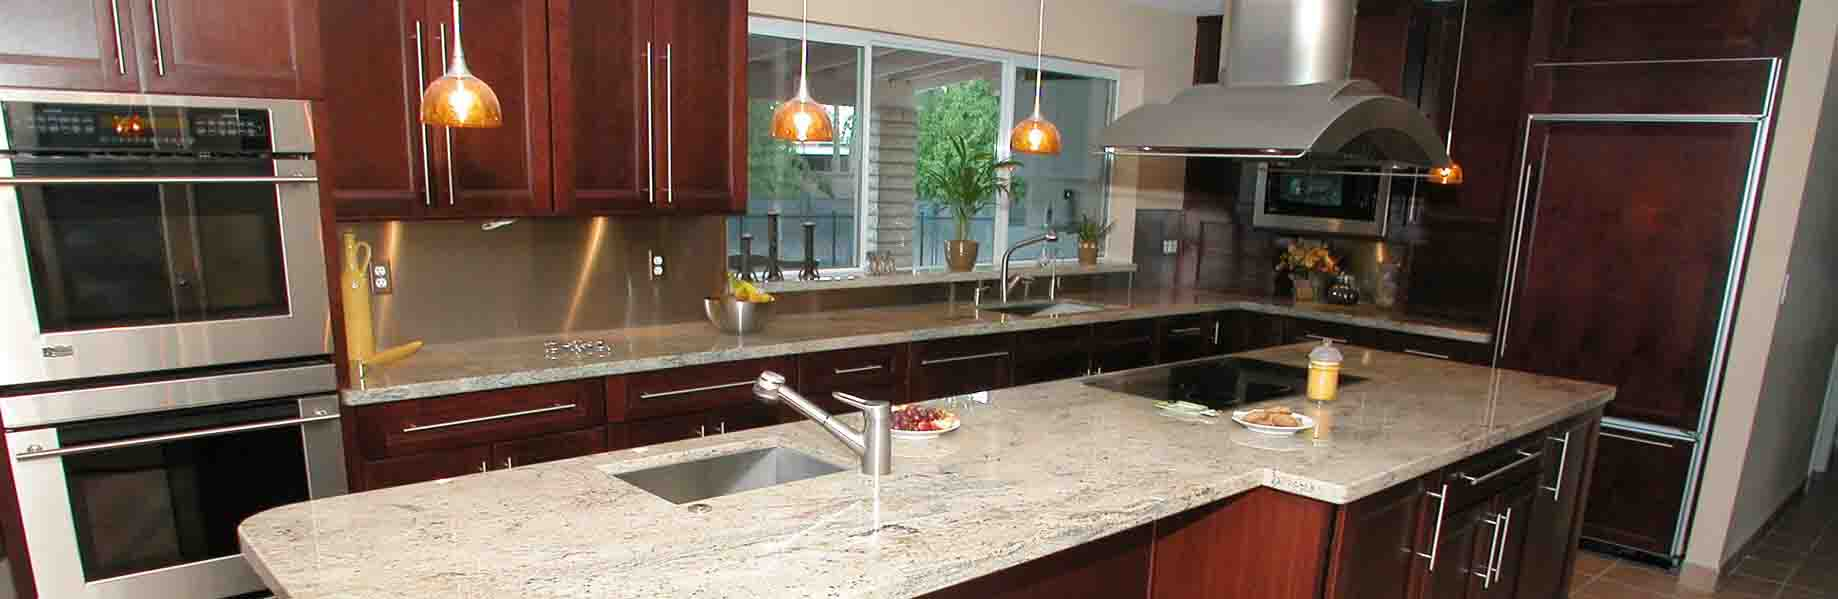 slide-granite-countertop-kitchen